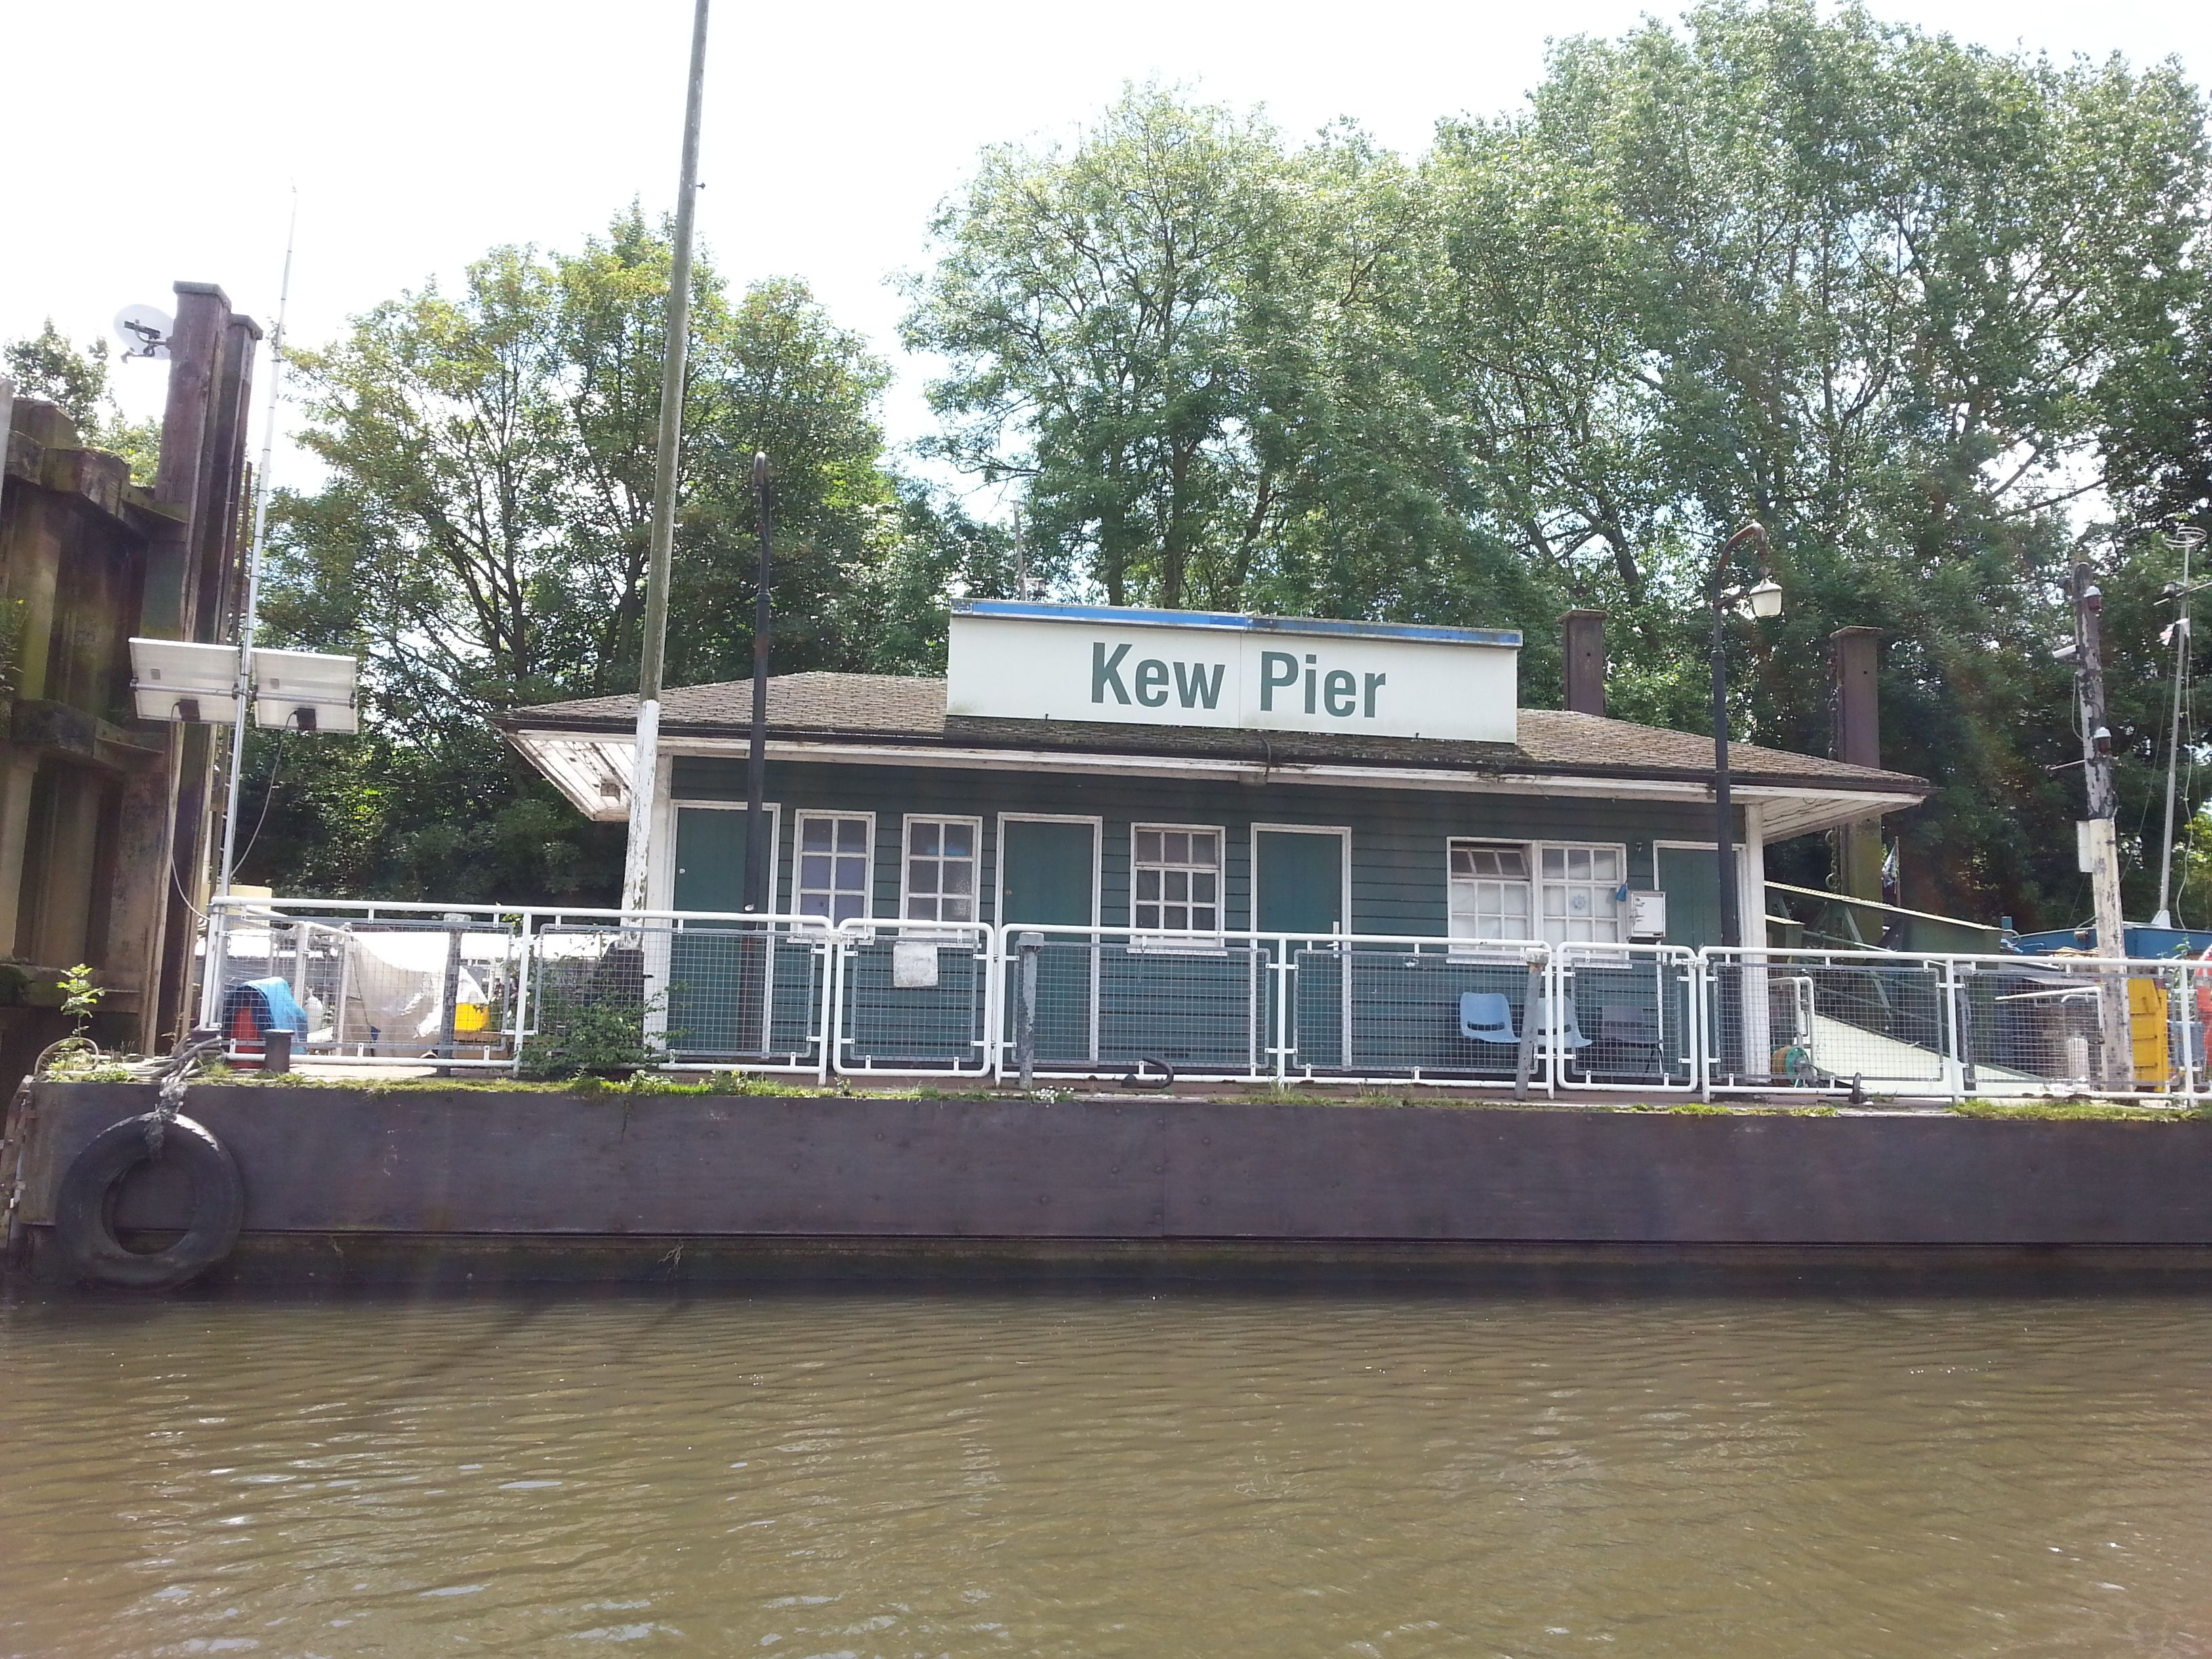 2d1f7351143094ef32e9fbd918667bb2 - Westminster Pier To Kew Gardens By Boat